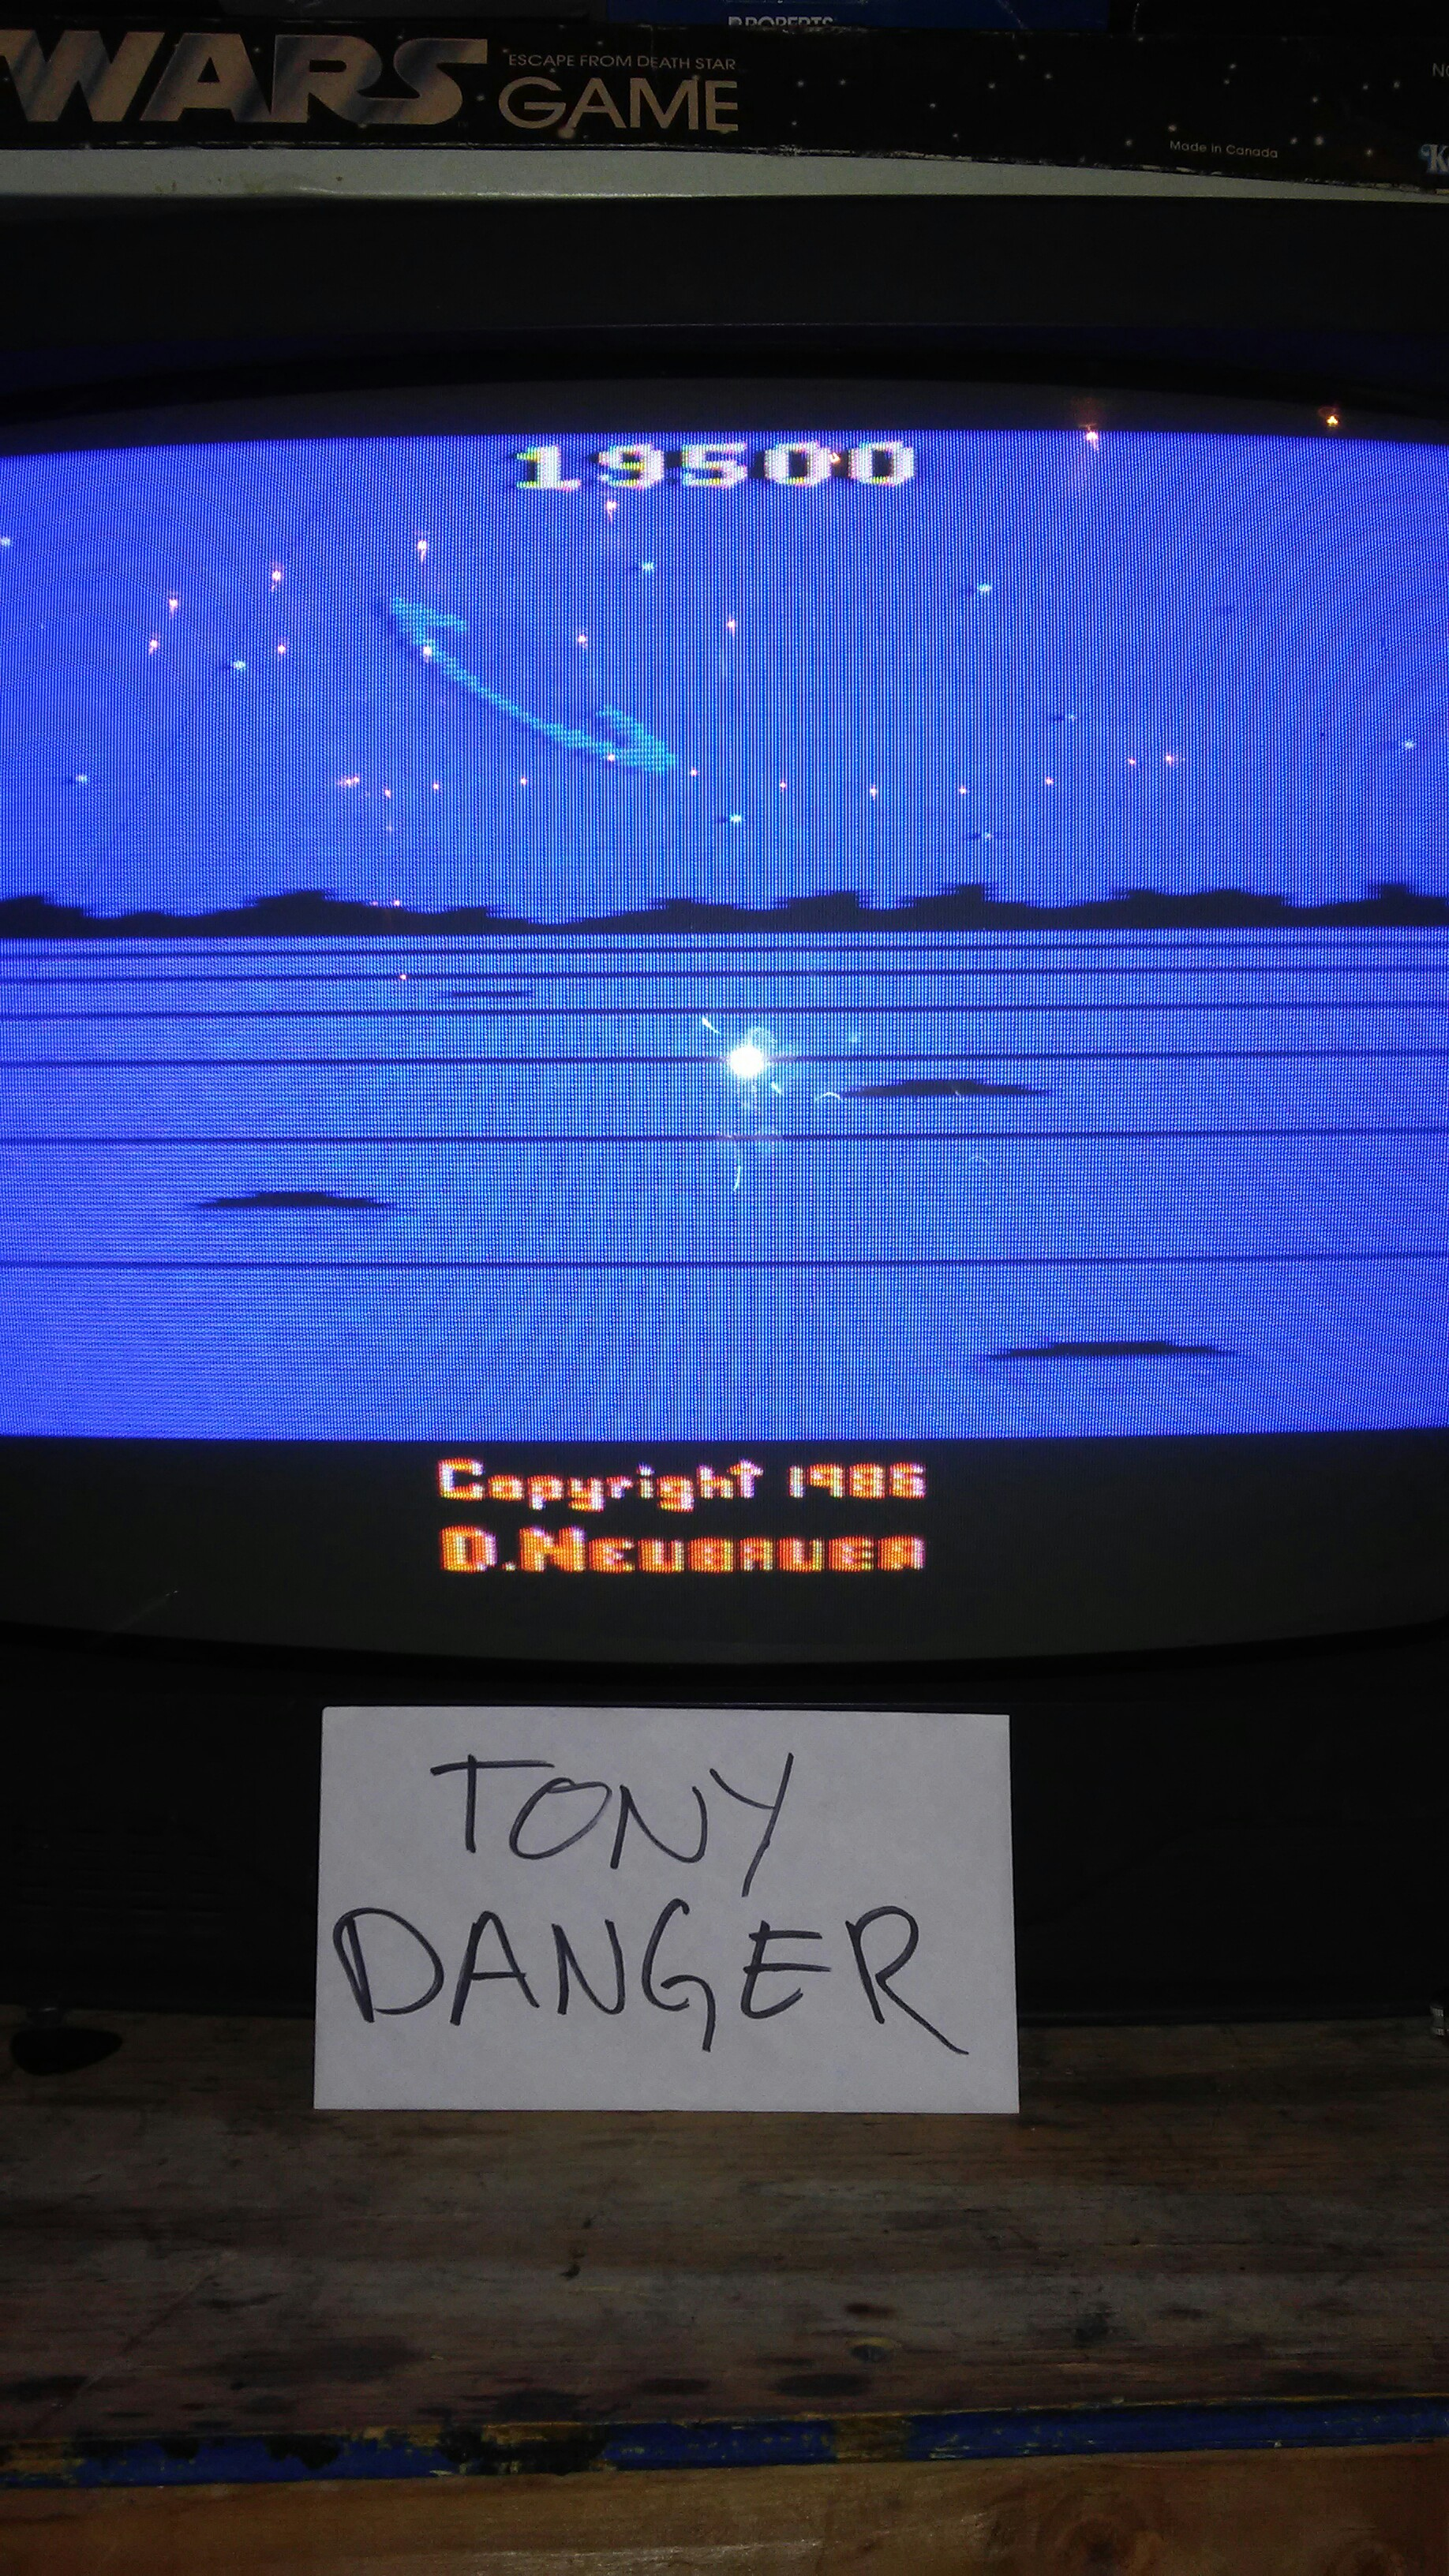 TonyDanger: Solaris (Atari 2600 Expert/A) 19,500 points on 2017-01-11 23:23:05